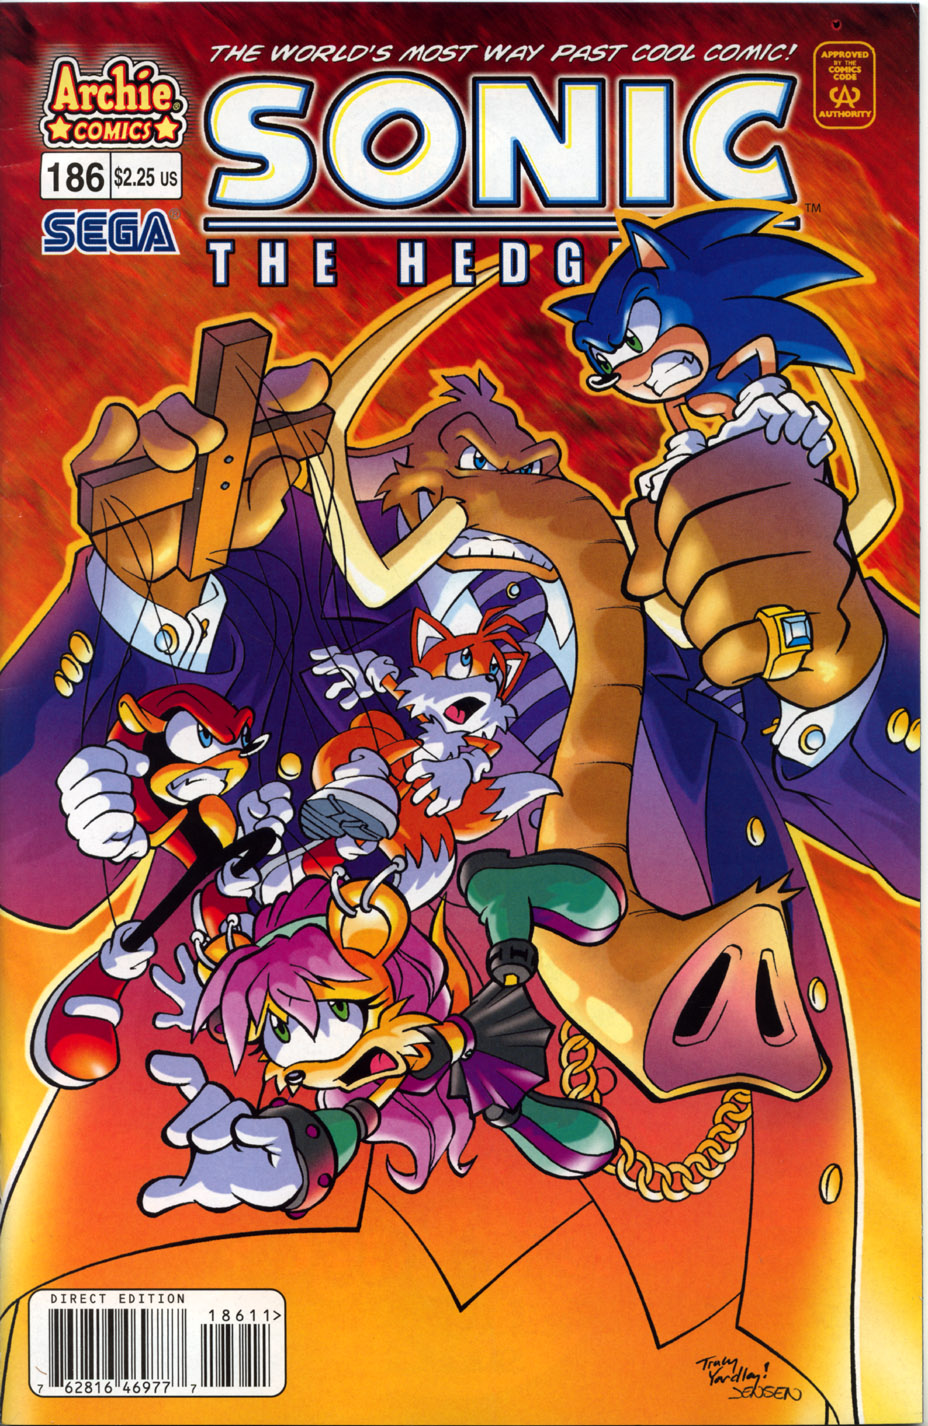 Sonic - Archie Adventure Series May 2008 Comic cover page